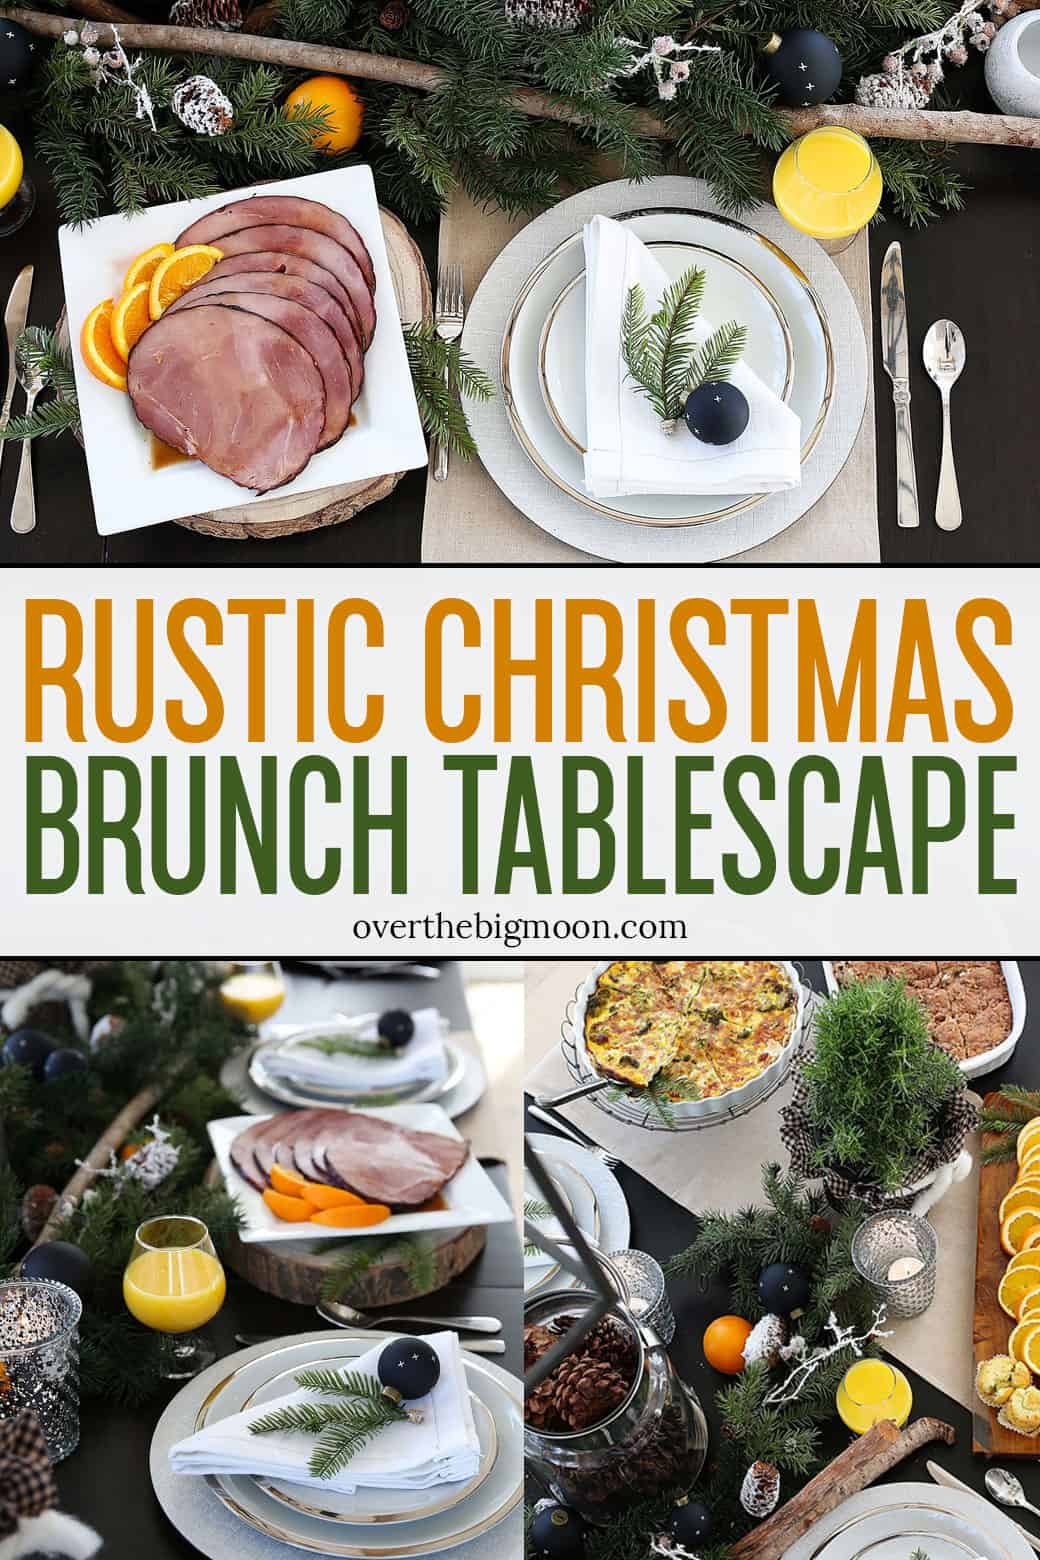 A beautiful Rustic Christmas Brunch Tabelscape and Christmas Brunch Menu Ideas! From overthebigmoon.com!